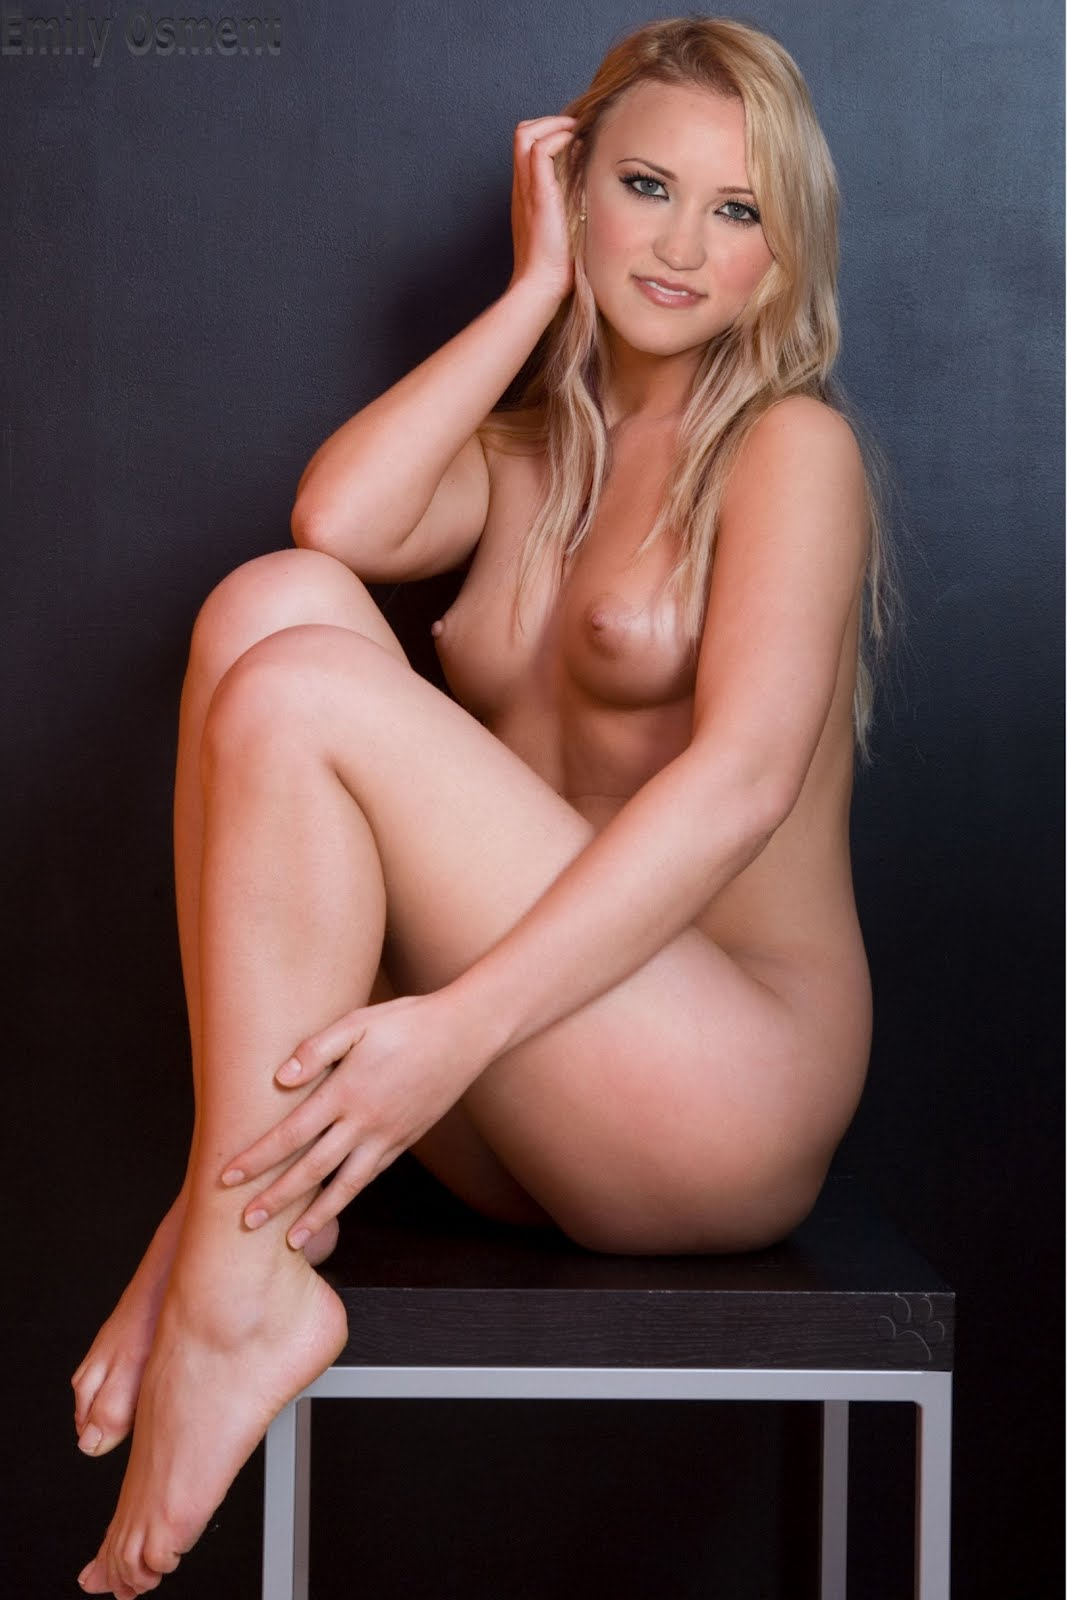 naked pics of emily osment